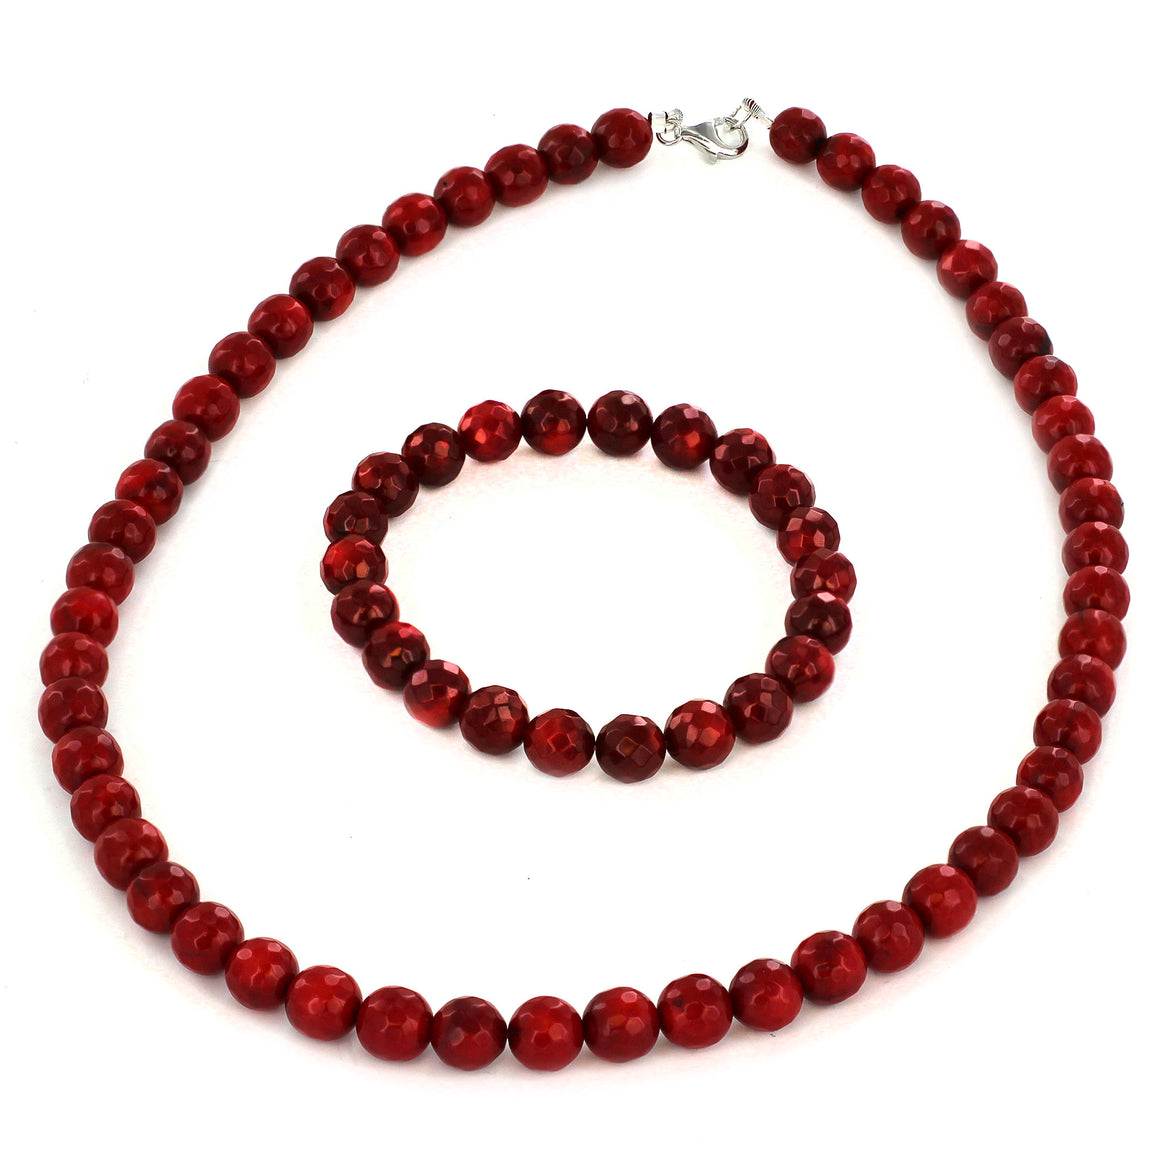 Women's Sterling Silver Red Dyed Coral Faceted Beaded Bracelet and Necklace Set